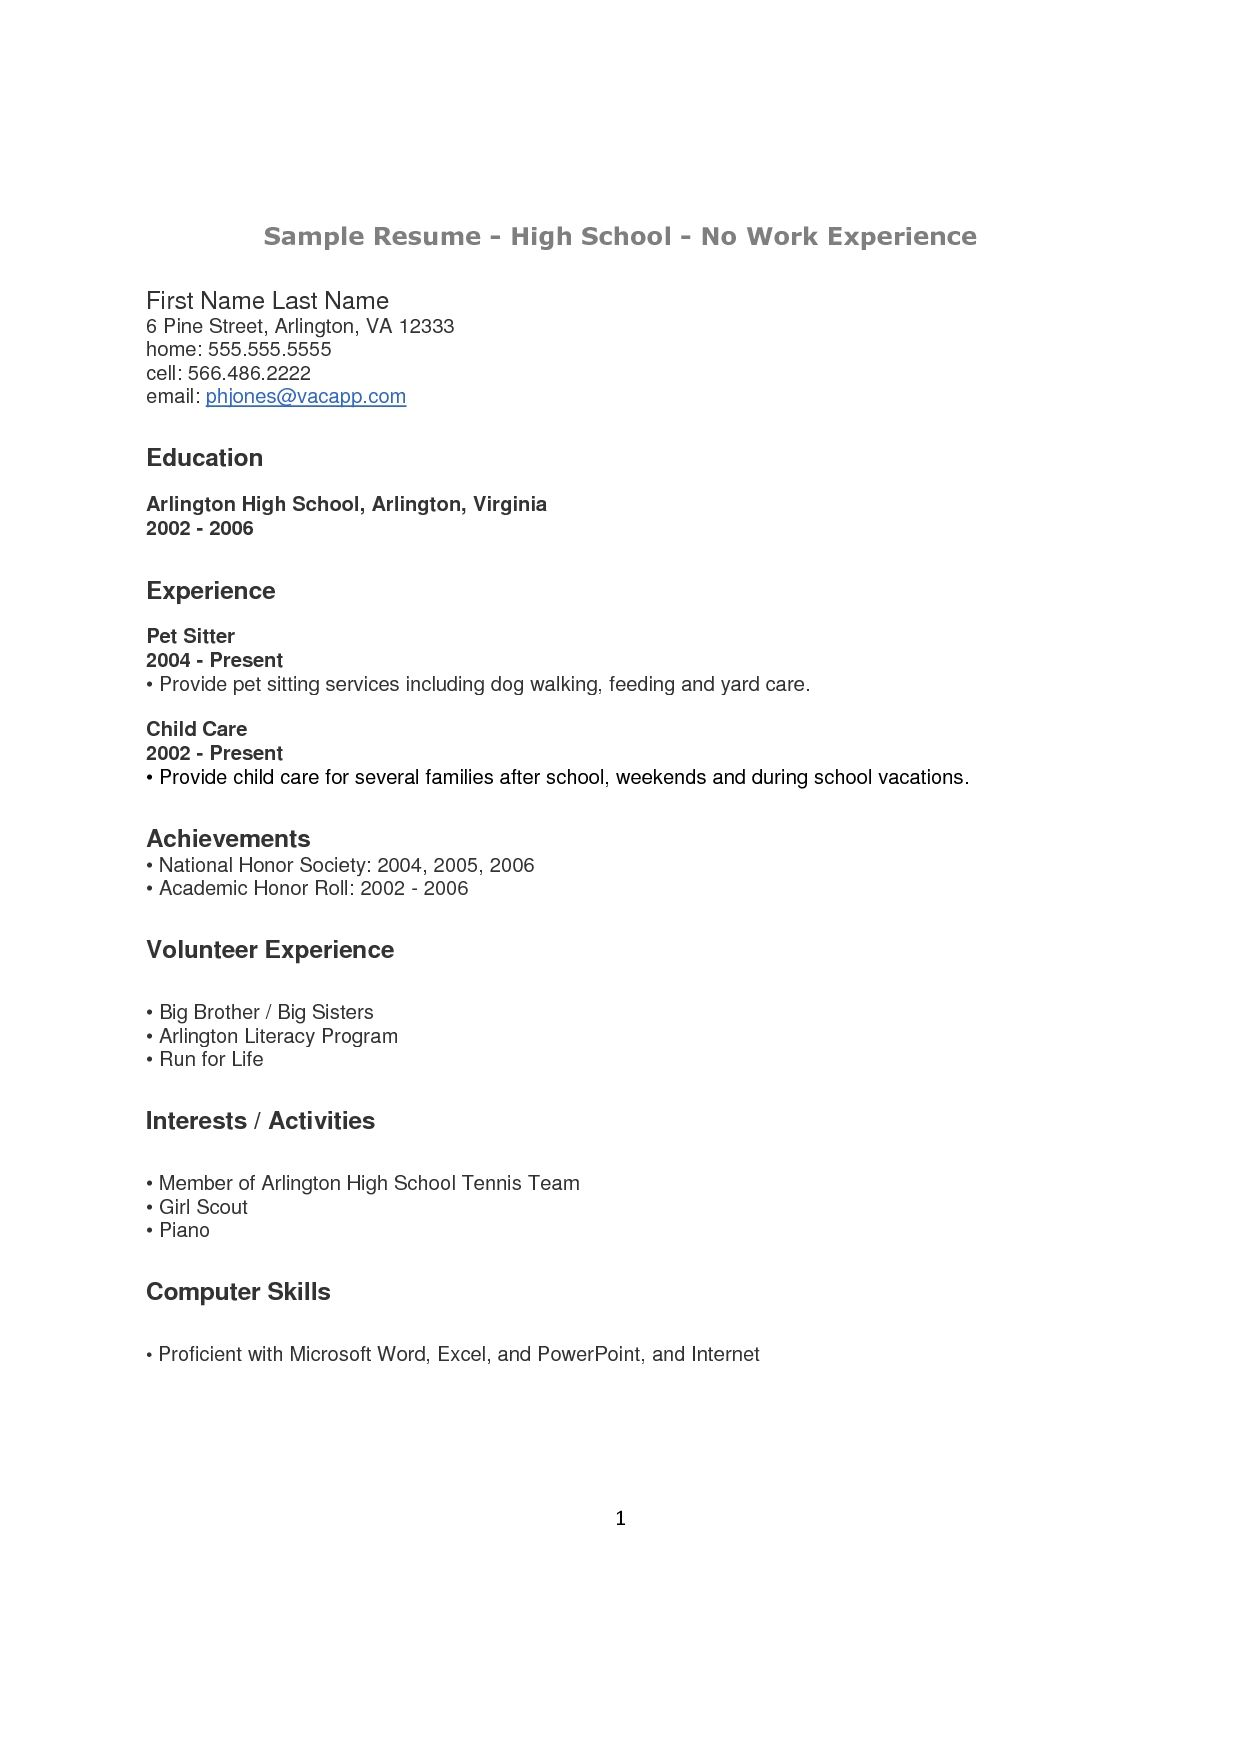 Example of student resume with no work experience